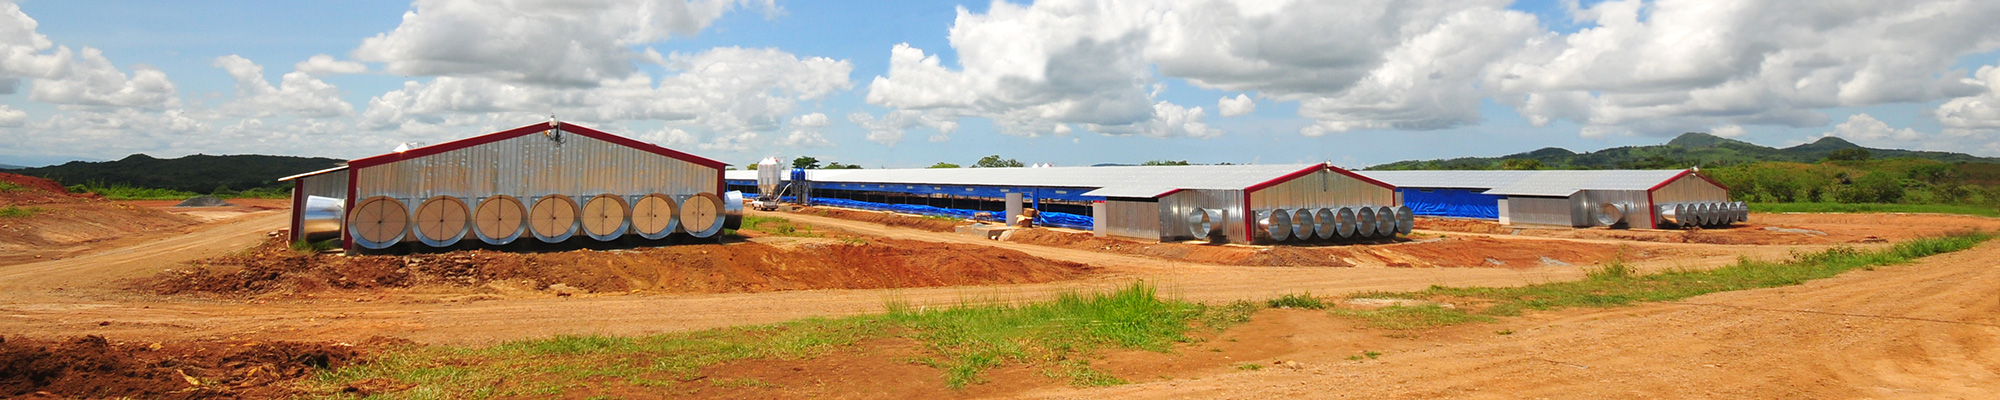 Dry Fumigation poultry houses